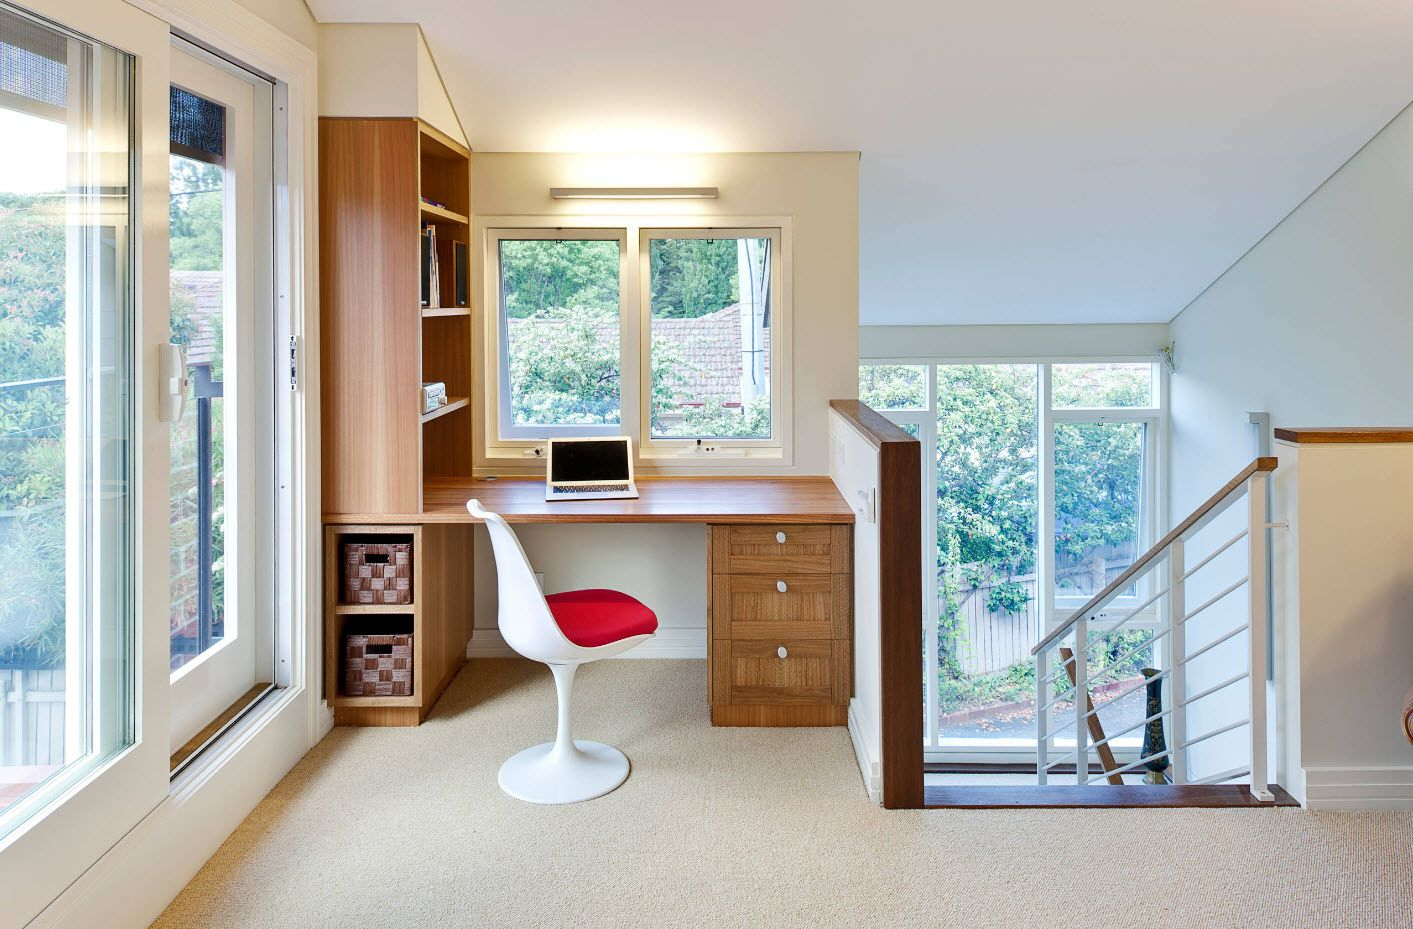 Top 100 Modern Home Office Design Trends 2017. White plastic chair with red cushion